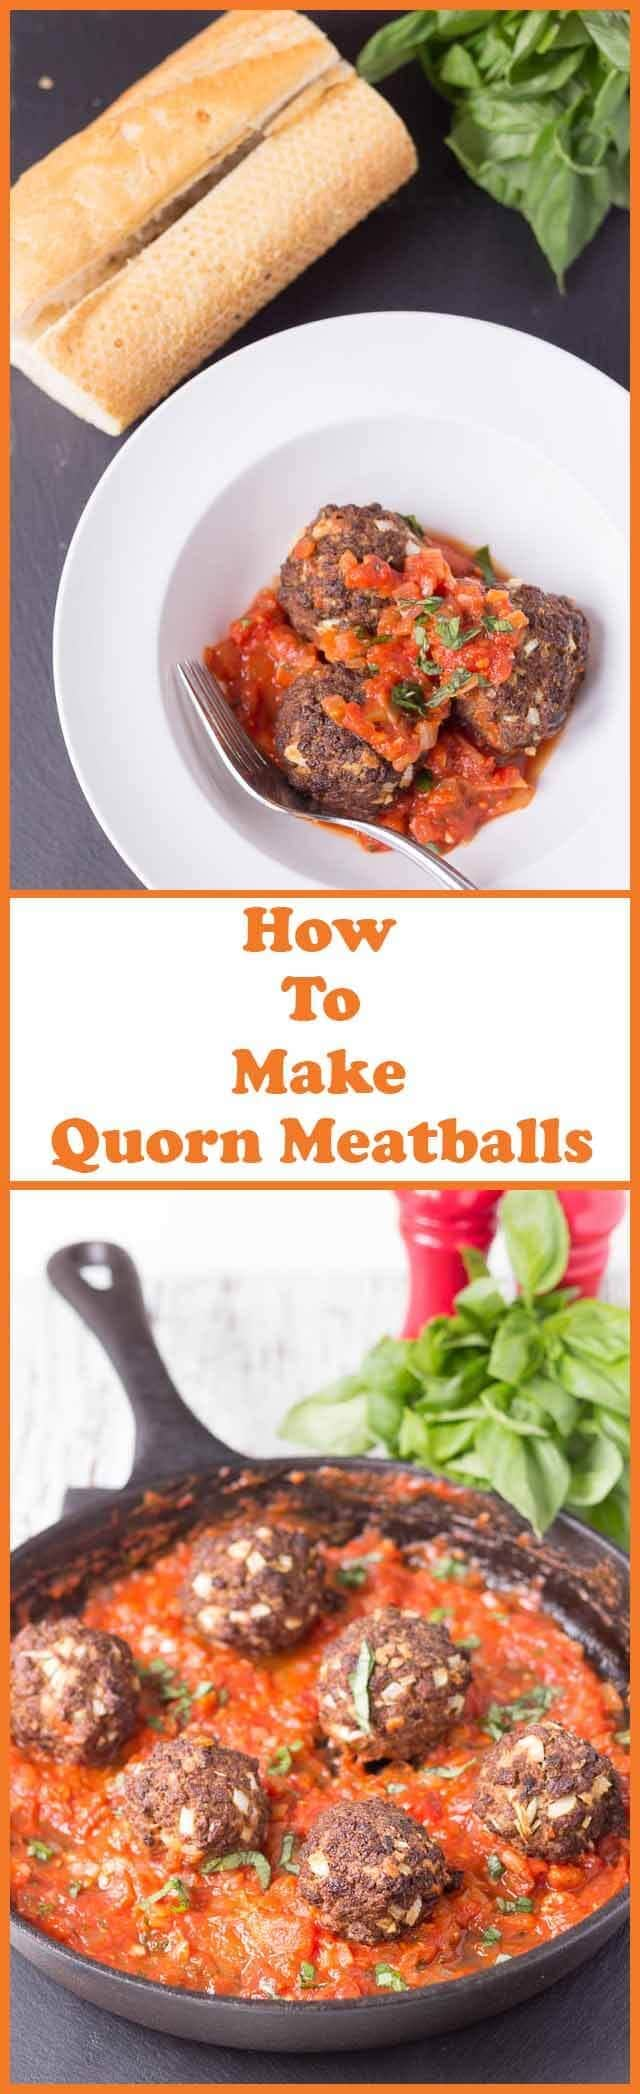 This Quorn meatballs recipe shows you how to make tasty Quorn meatballs in under one hour. Baked in the oven and with a delicious tomato sauce this is an excellent meat free weeknight family meal! #neilshealthymeals #quorn #quornmeatballs #vegetarian #meatfree #meatballs